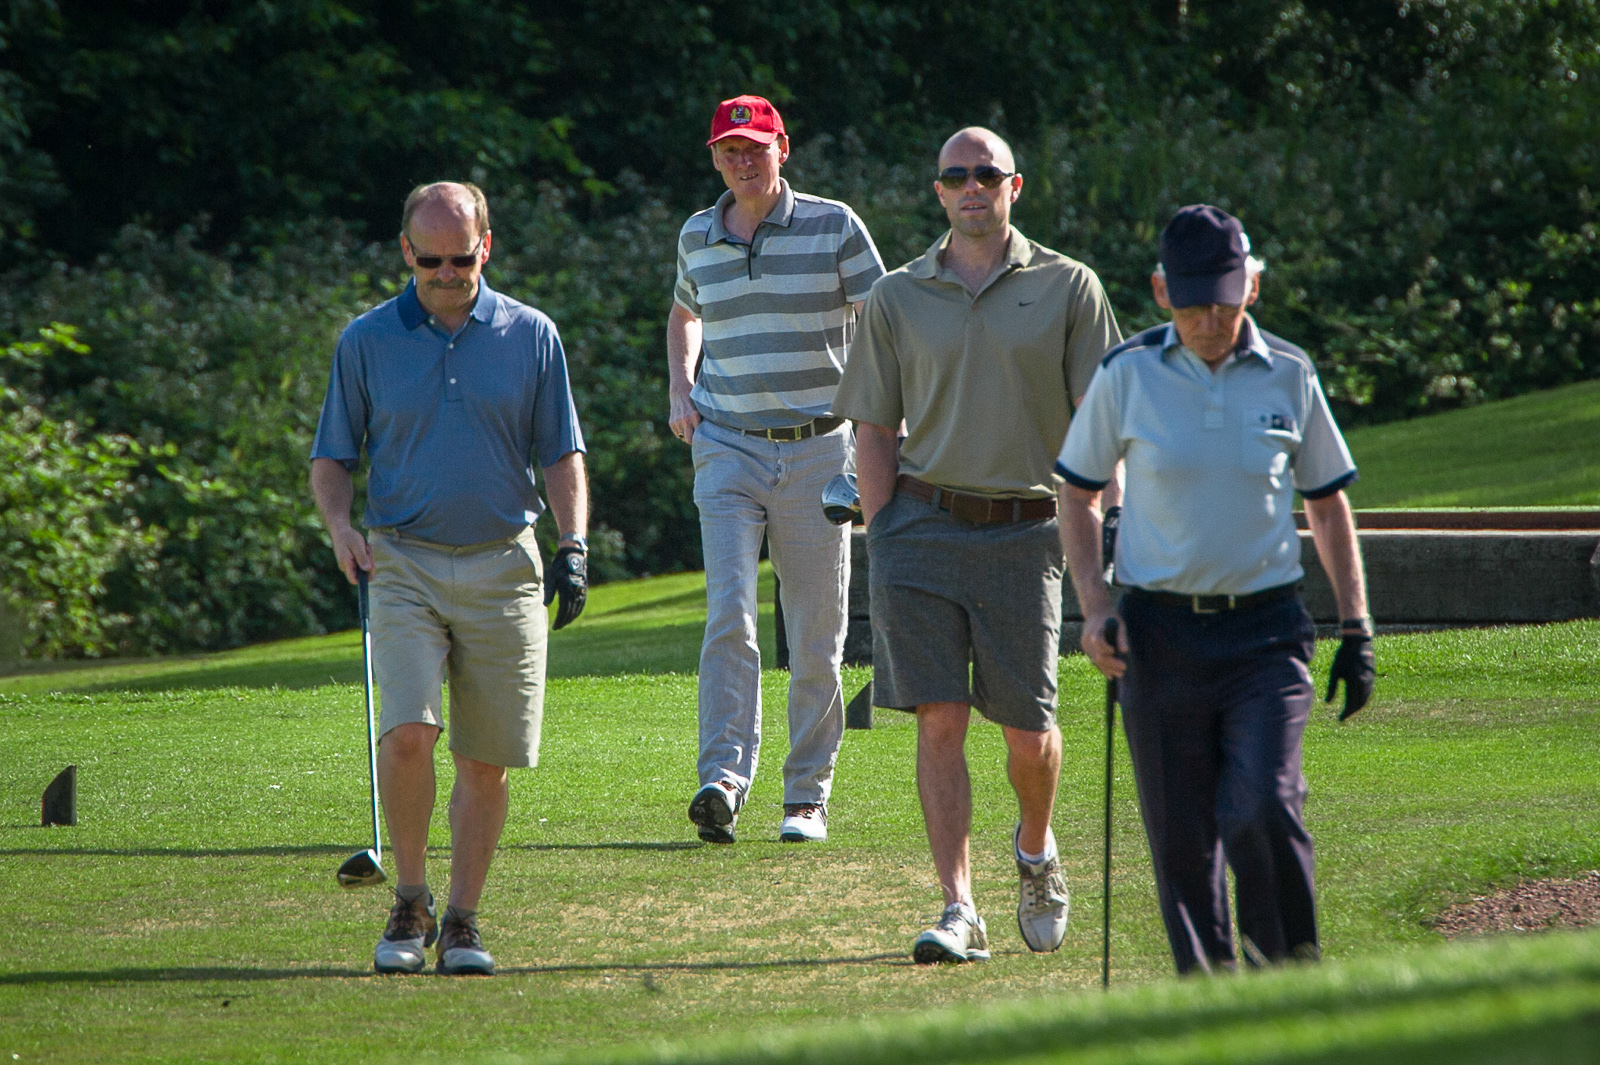 Golf Society Day Generic People Images 3+ Golfers (28)